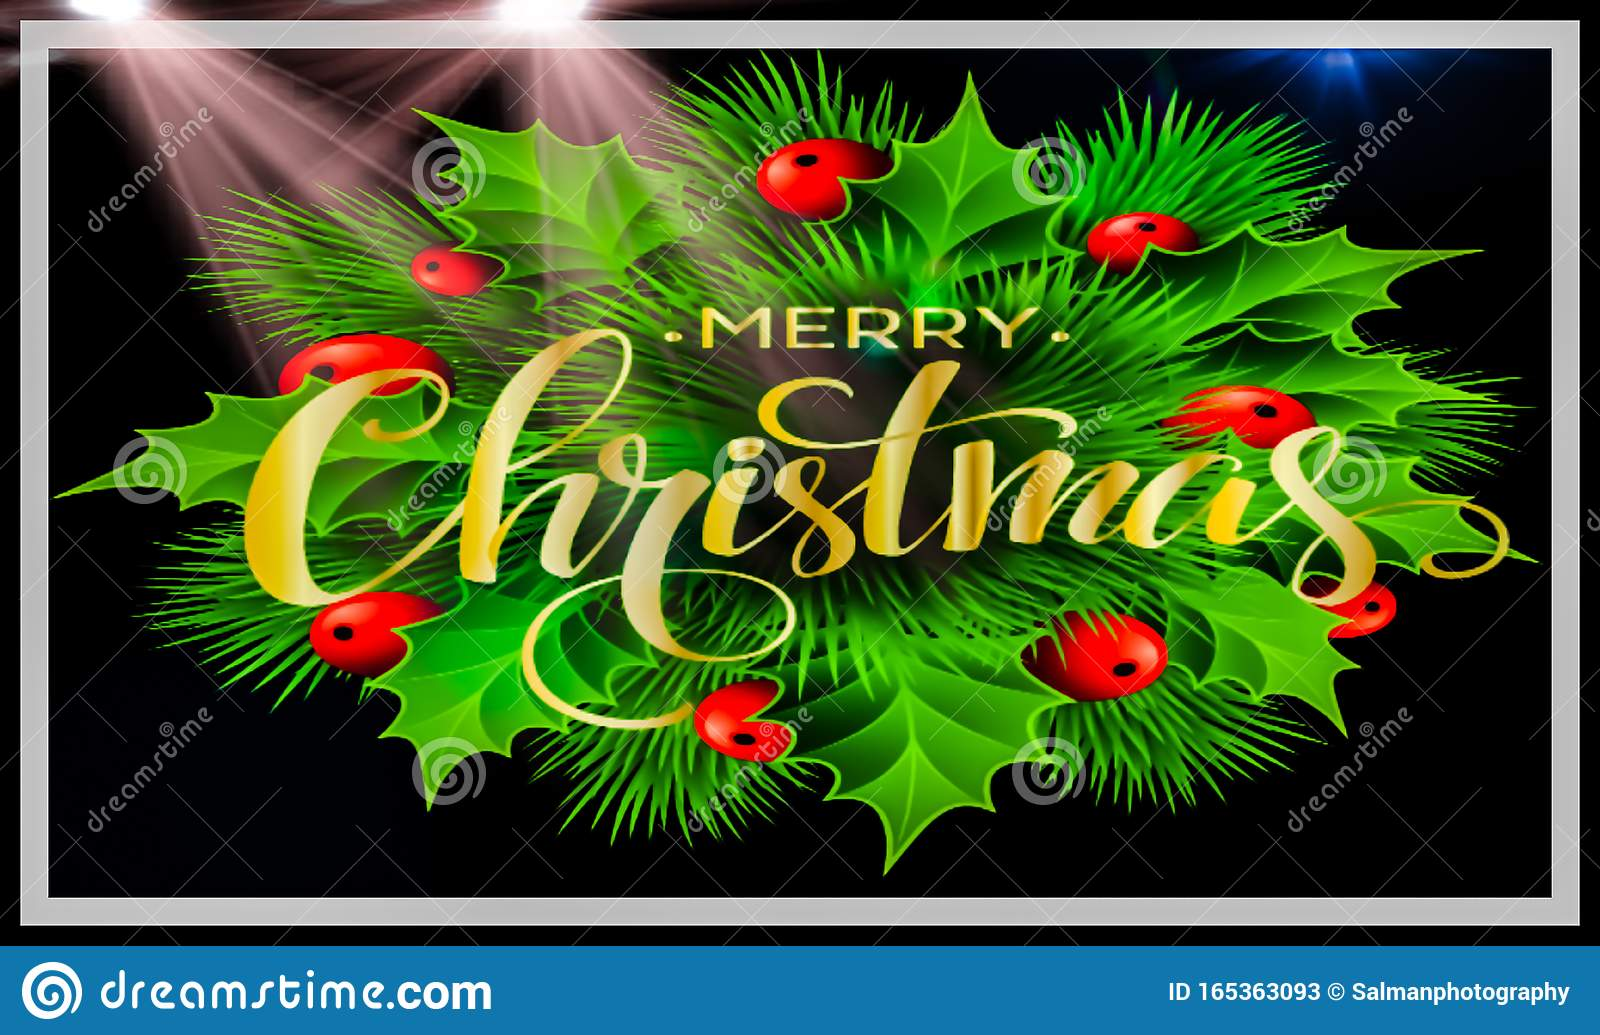 Merry Christmas celebration of 2019. Free merry christmas images.